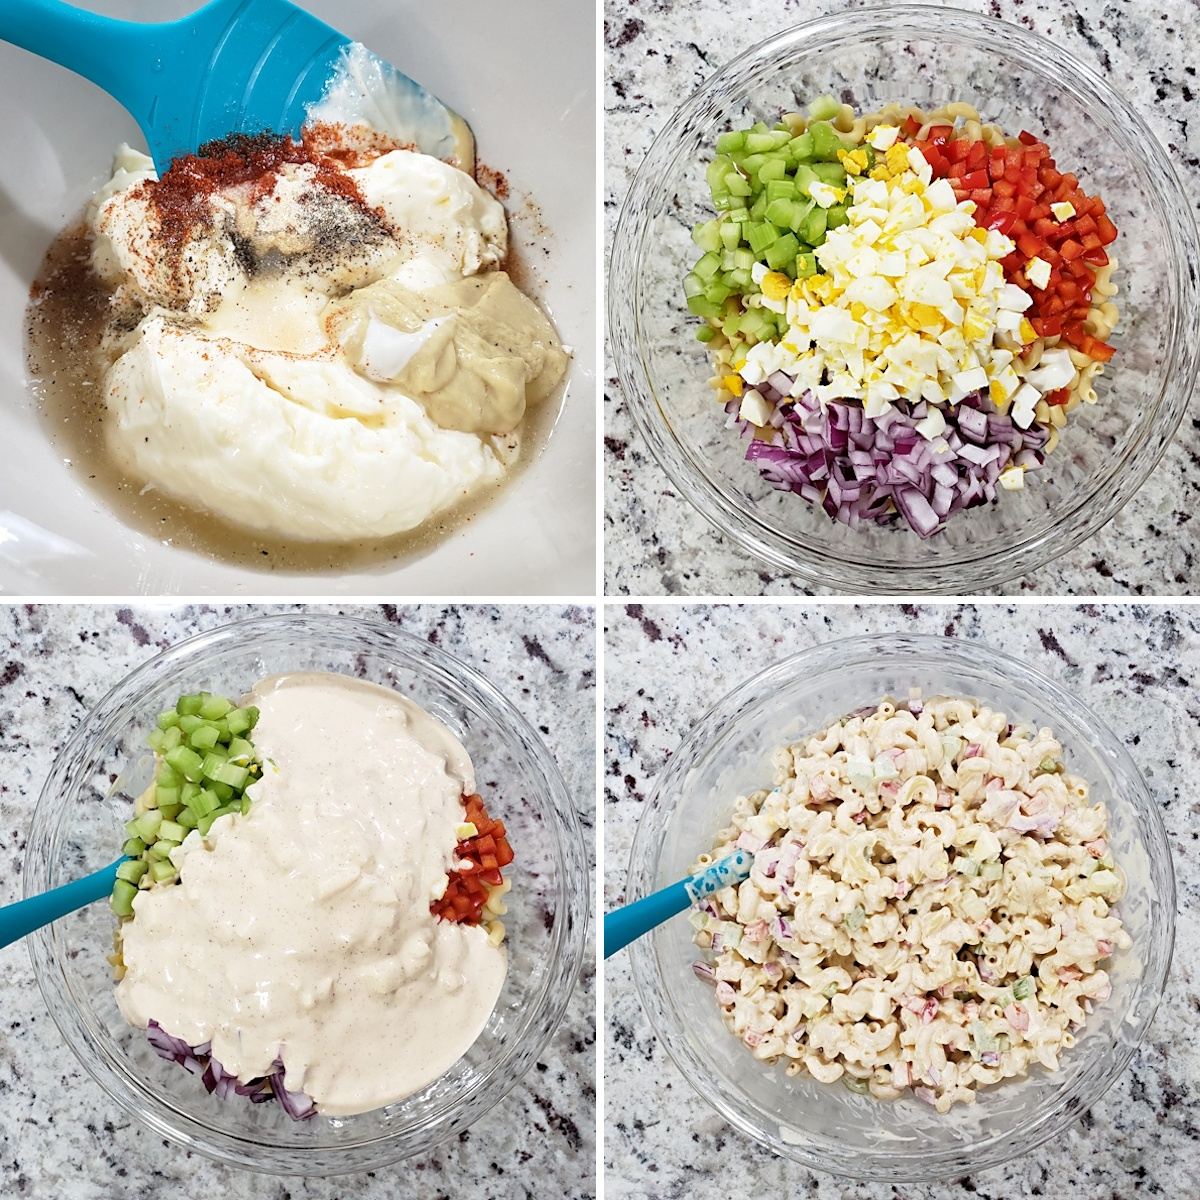 Mixing ingredients in a glass bowl.